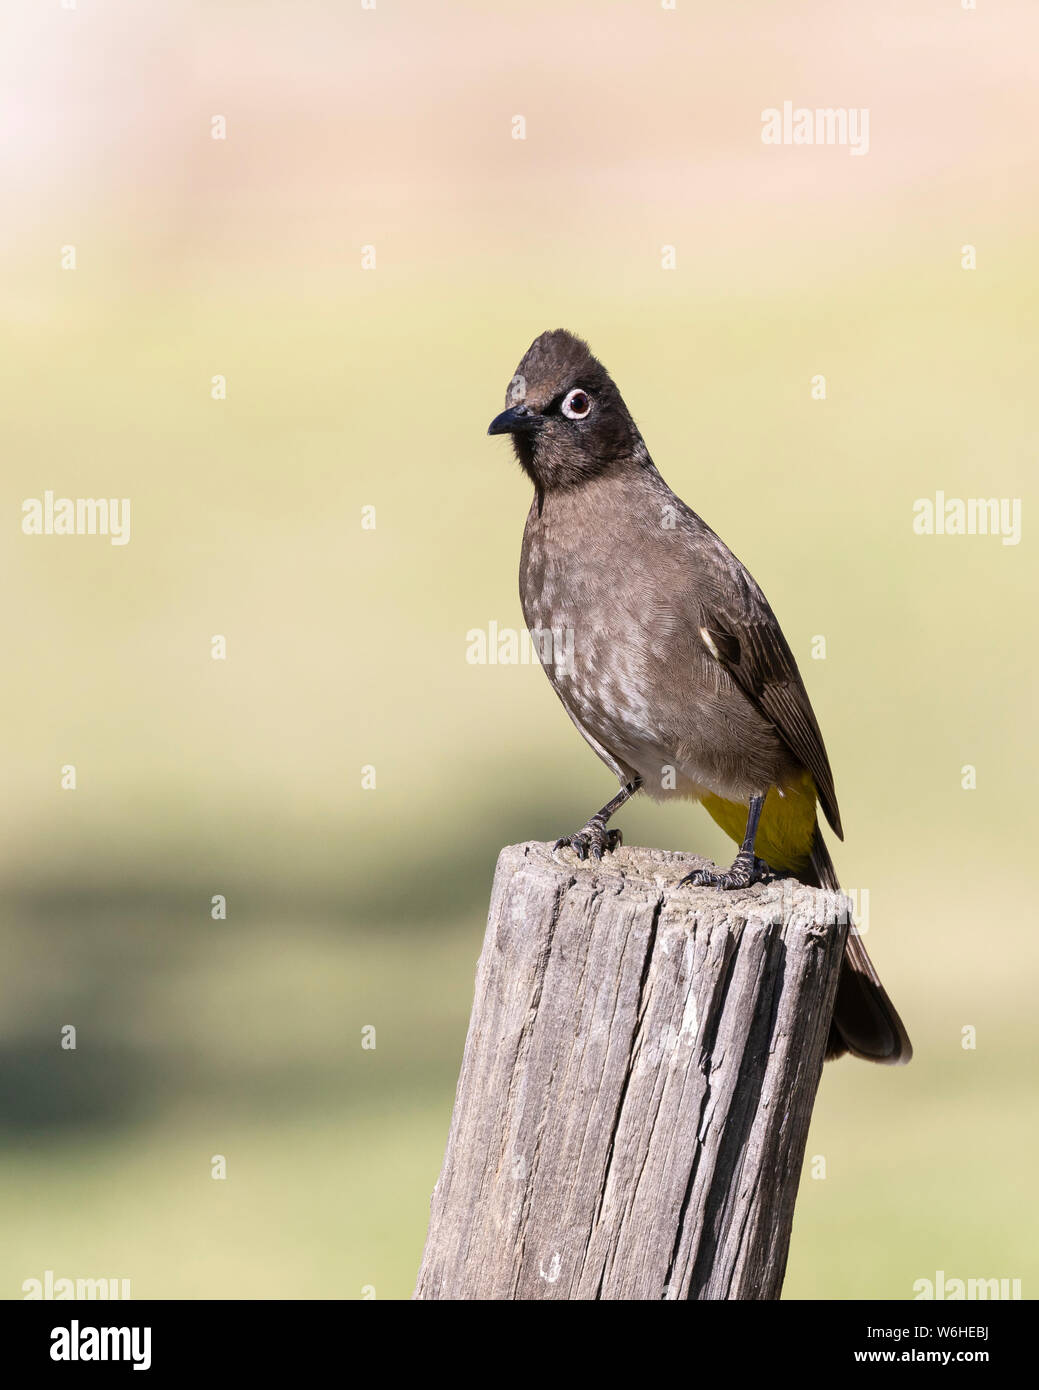 Cape Bulbul (Pycnonotus capensis) perched on pole, Robertson, Western Cape, South Africa in autumn. Stock Photo